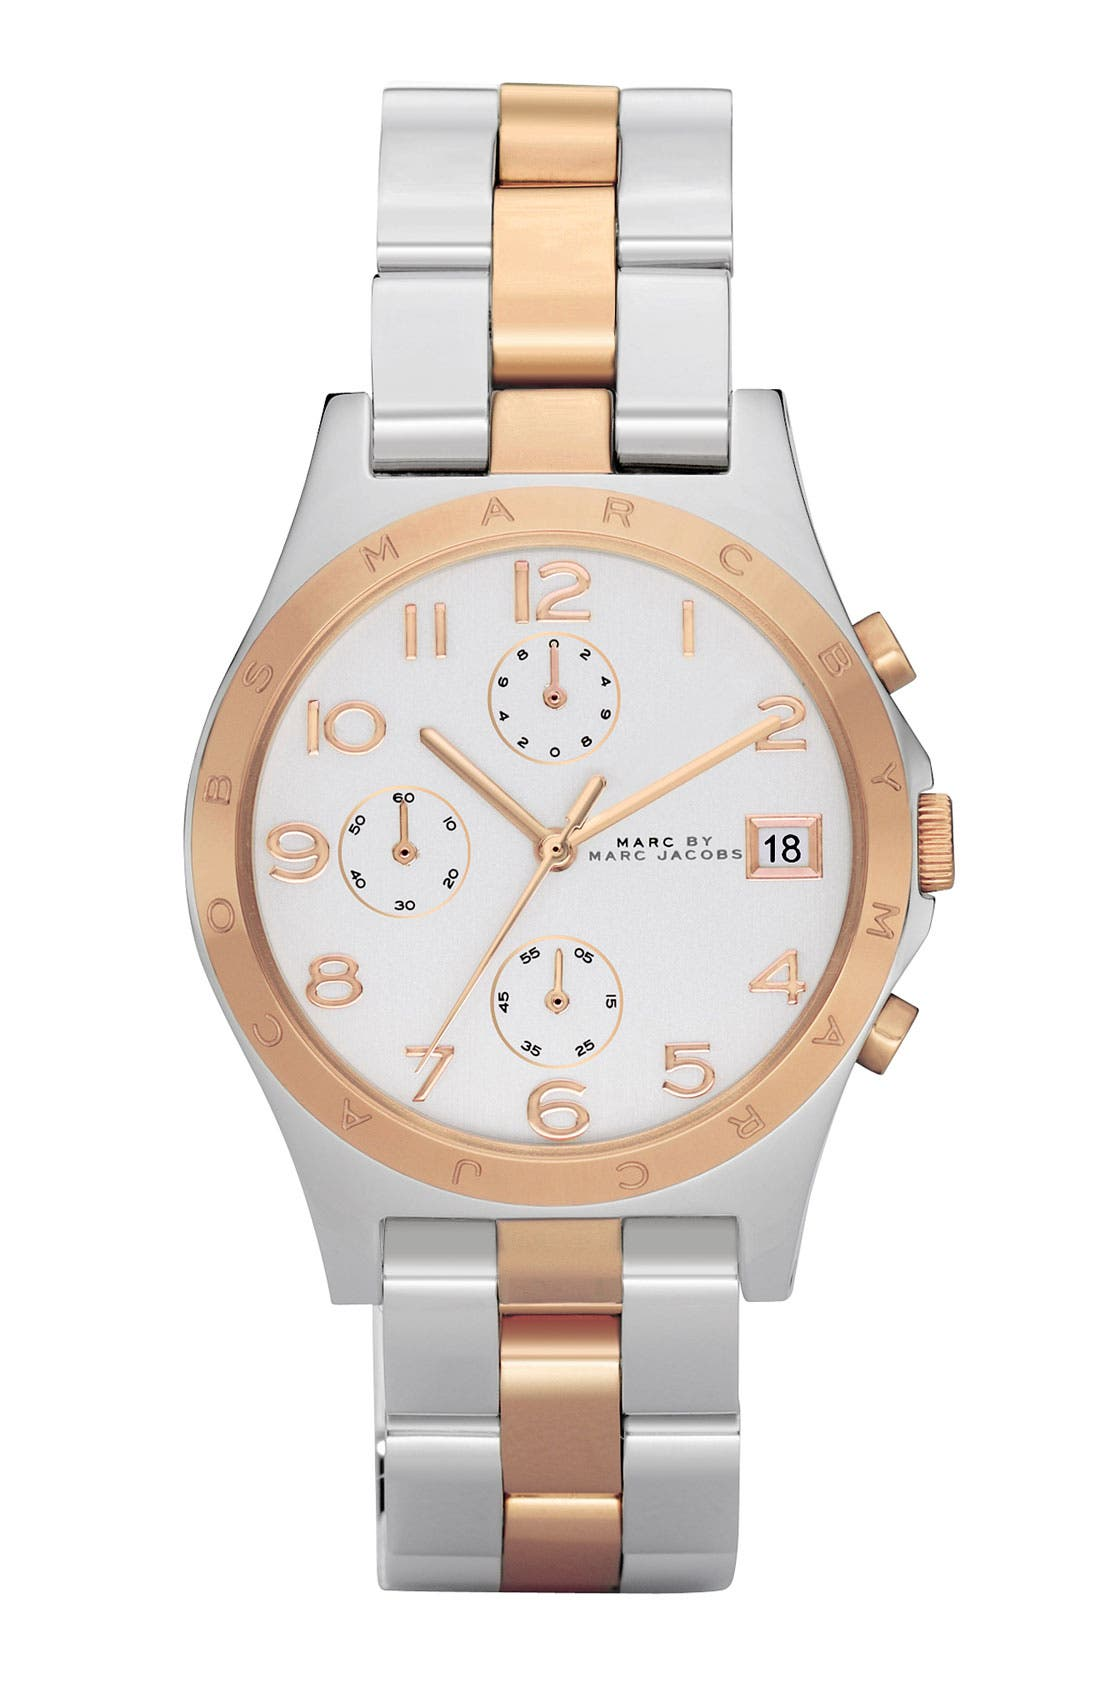 Main Image - MARC JACOBS 'Henry' Two-Tone Chronograph Watch